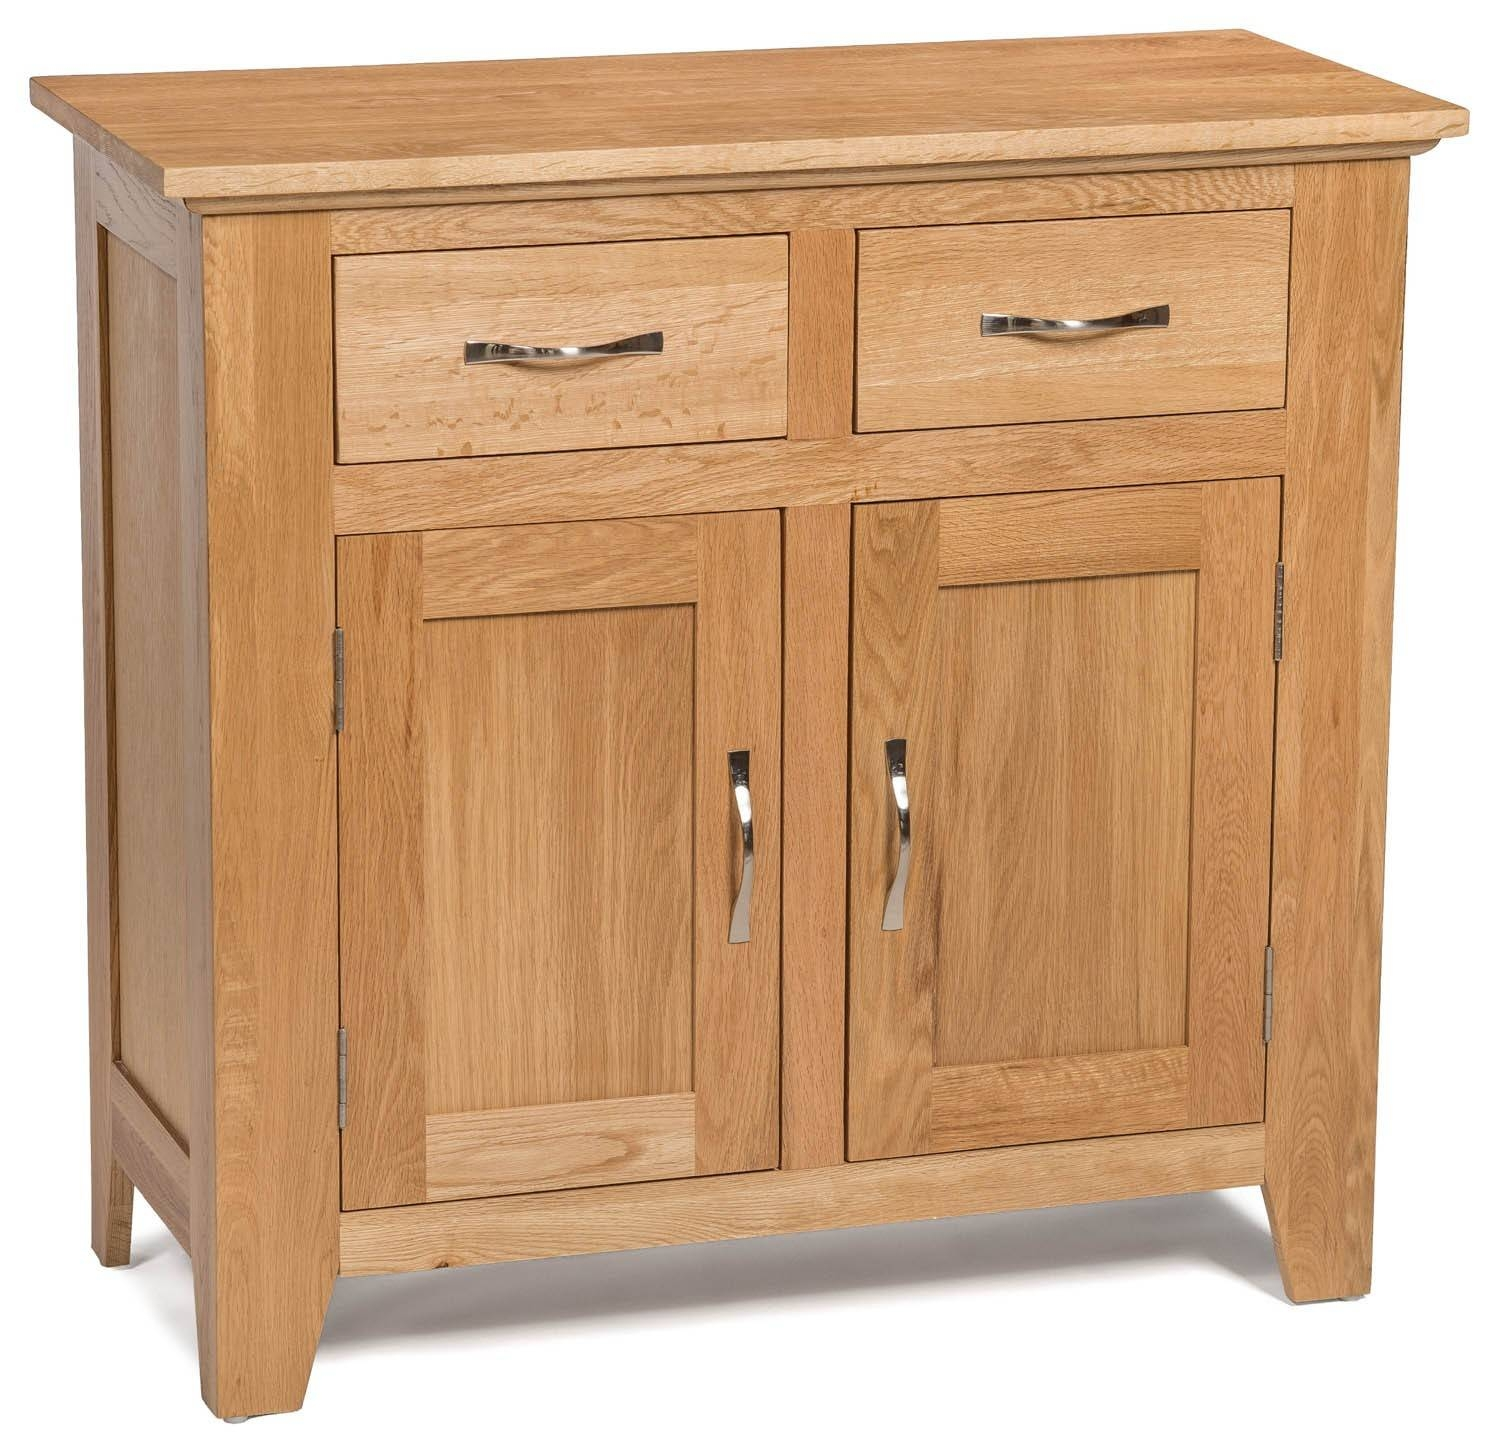 Camberley Oak Small 2 Door 2 Drawer Sideboard - Sideboards & Tops with regard to Small Sideboards With Drawers (Image 6 of 30)